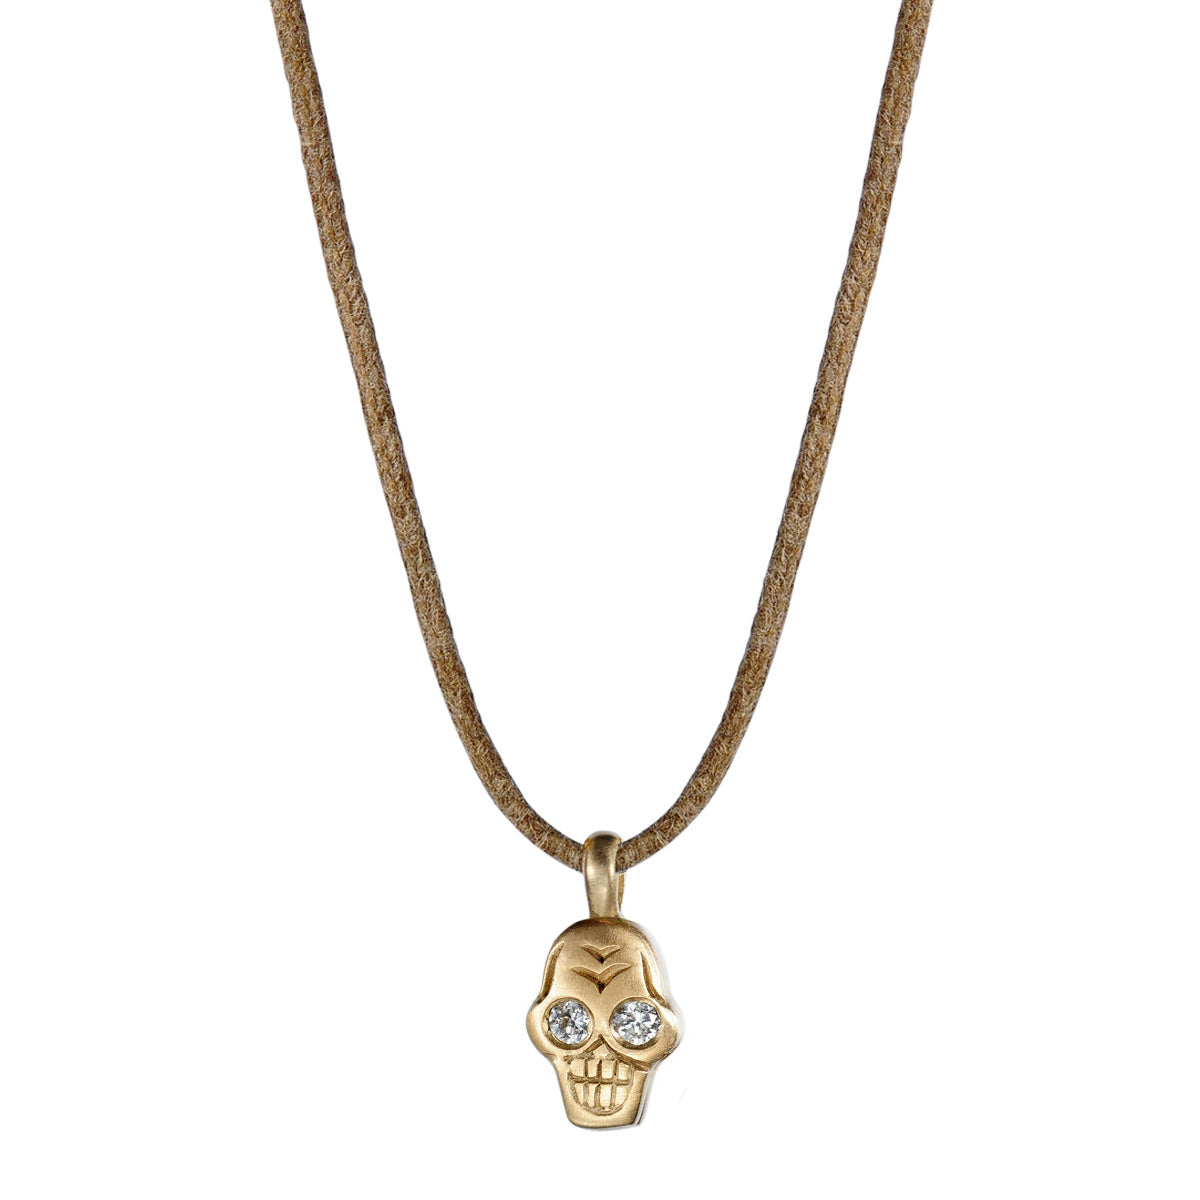 10K Gold Tiny Skull Pendant with Diamond Eyes on Natural Cord